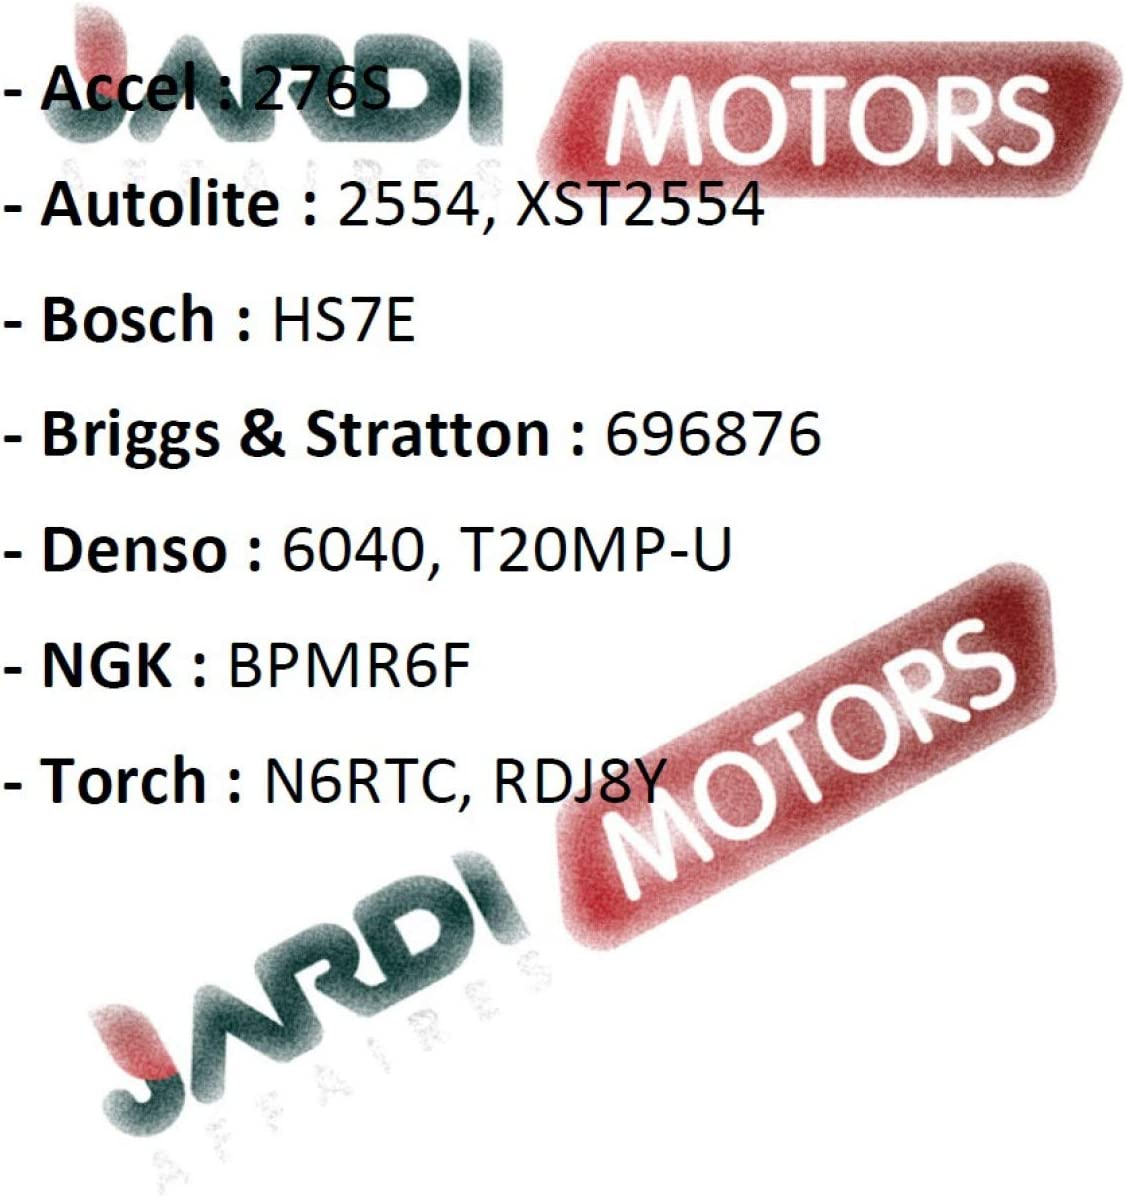 Jardiaffaires Champion RDJ7Y Candle for Thermal Motor